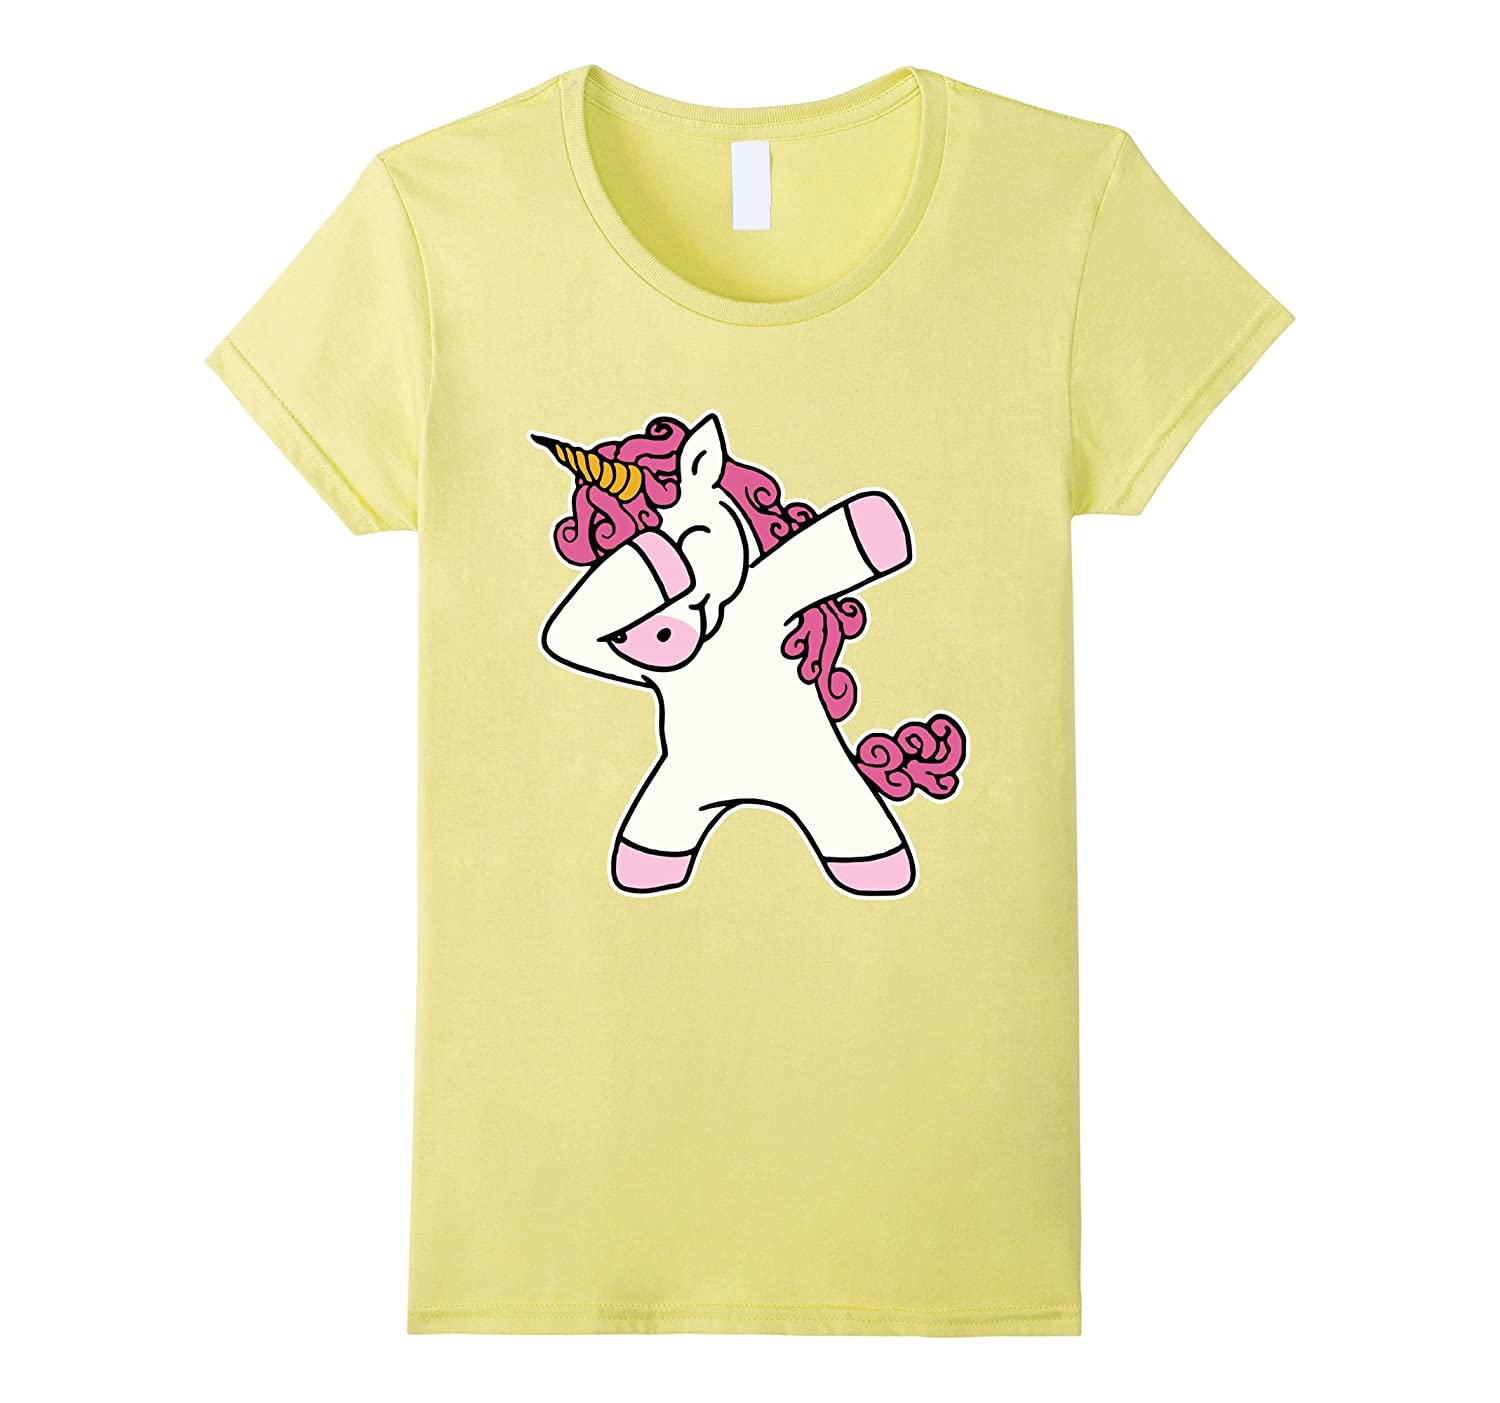 b277d1992 Cute Dabbing Unicorn Shirt Dab Hip Hop Funny Magic T-Shirt-ANZ ...